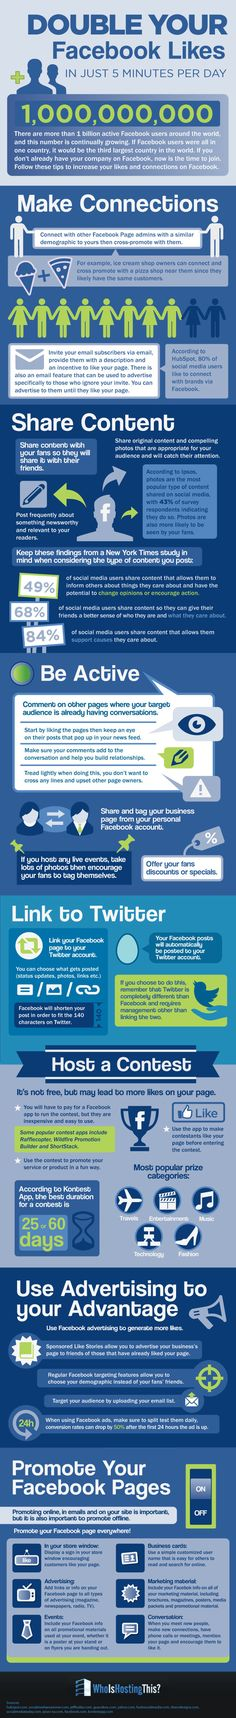 How To Double Your #Facebook Likes In Just 5 Minutes Per Day - #infographic #socialmedia